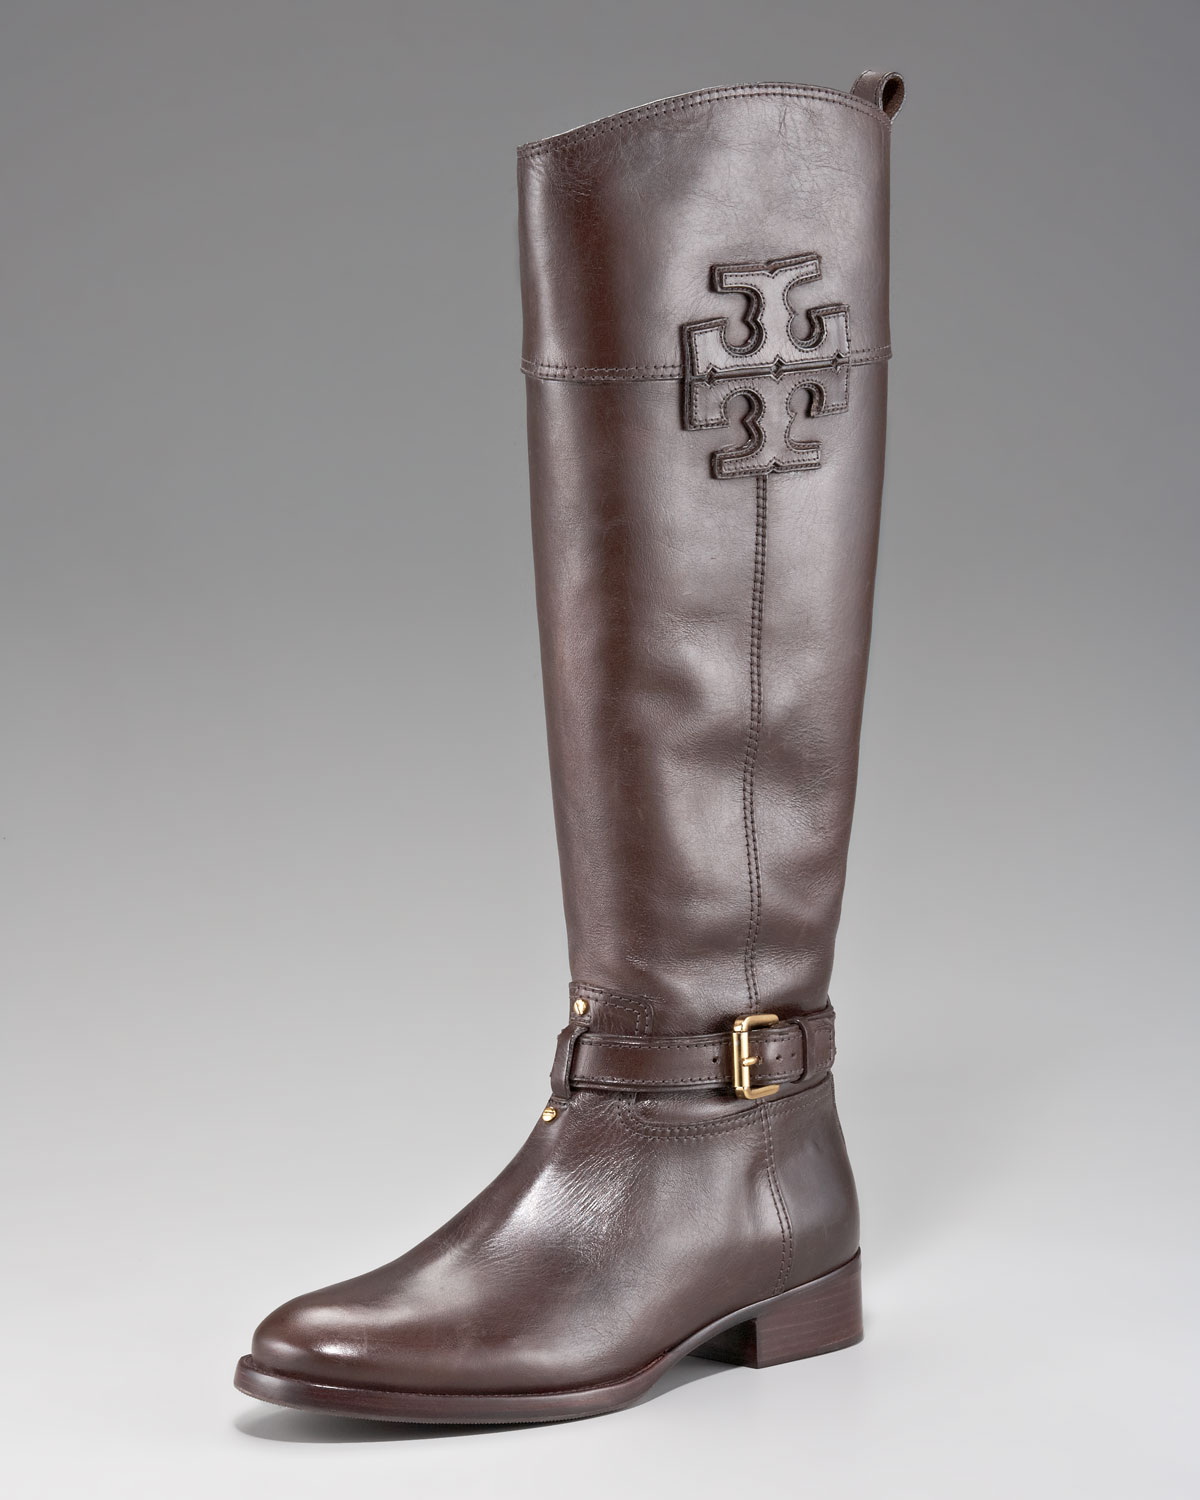 Tory burch Blaire Leather Riding Boot in Black | Lyst